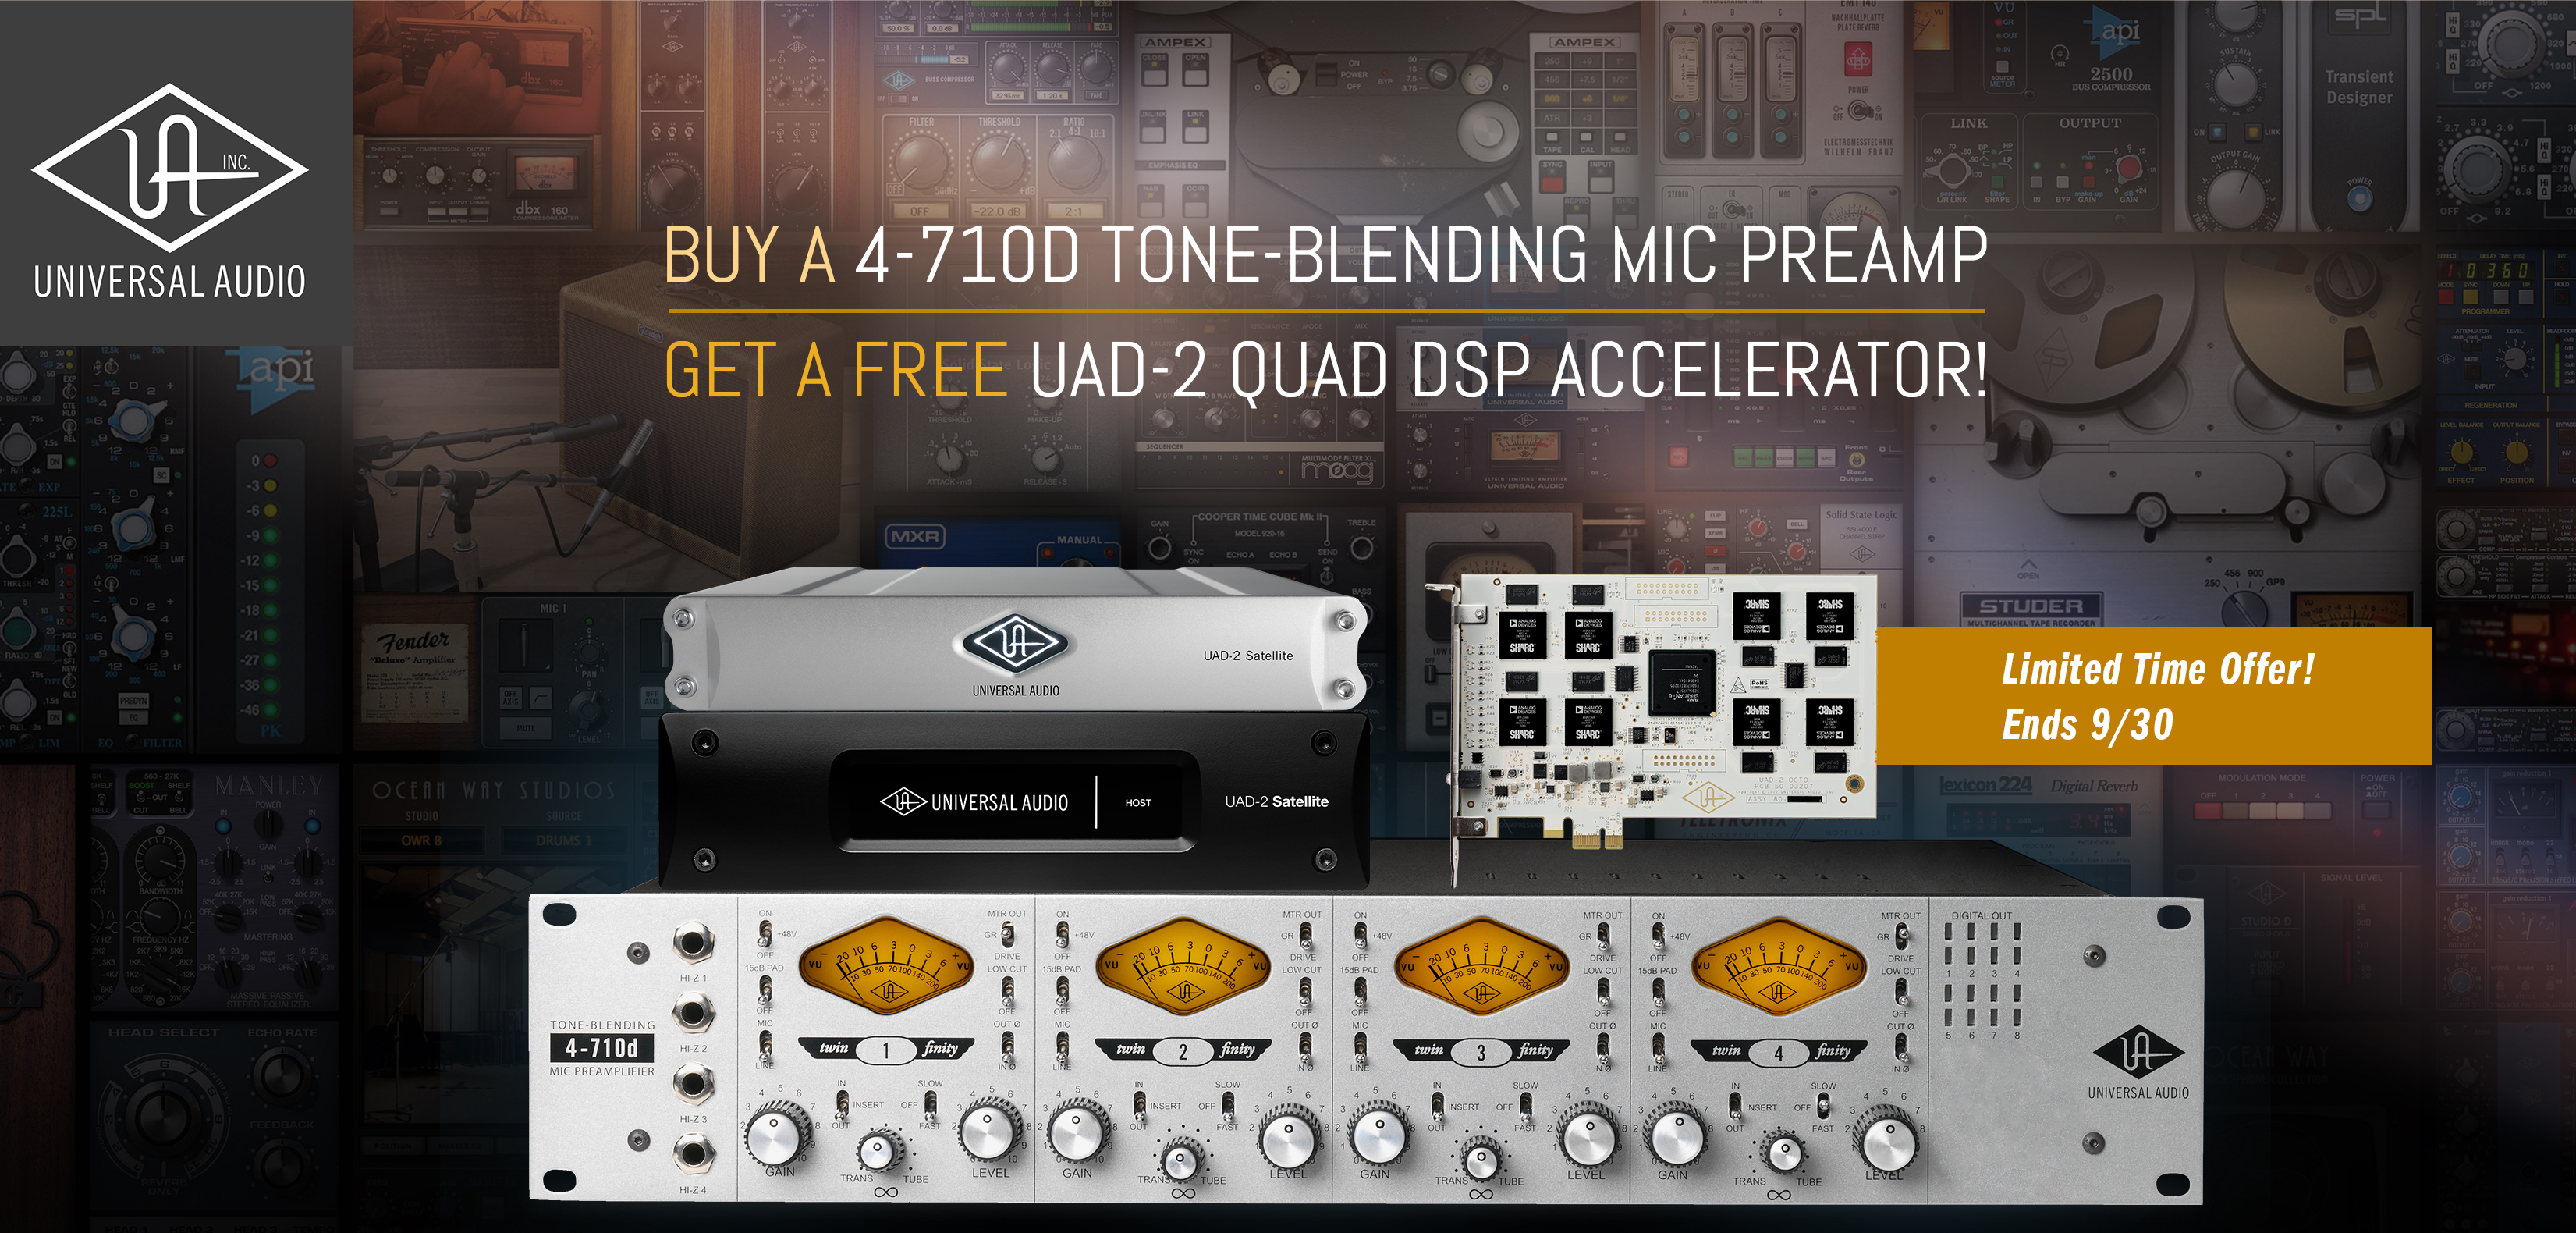 Universal Audio 4-710d Mic Preamp Sale